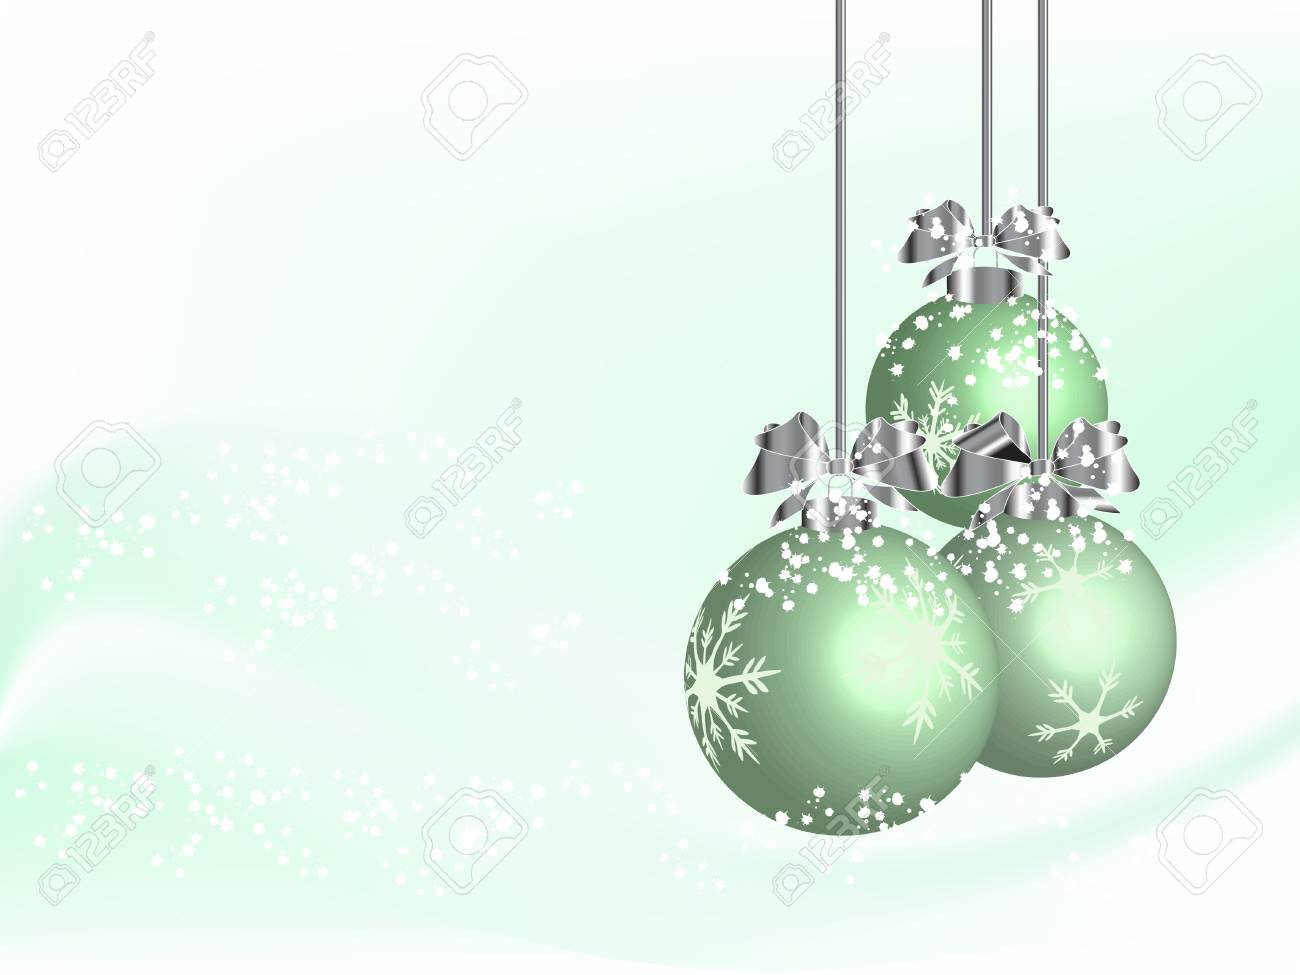 Abstract christmas background - vector illustration Stock Vector - 5773898